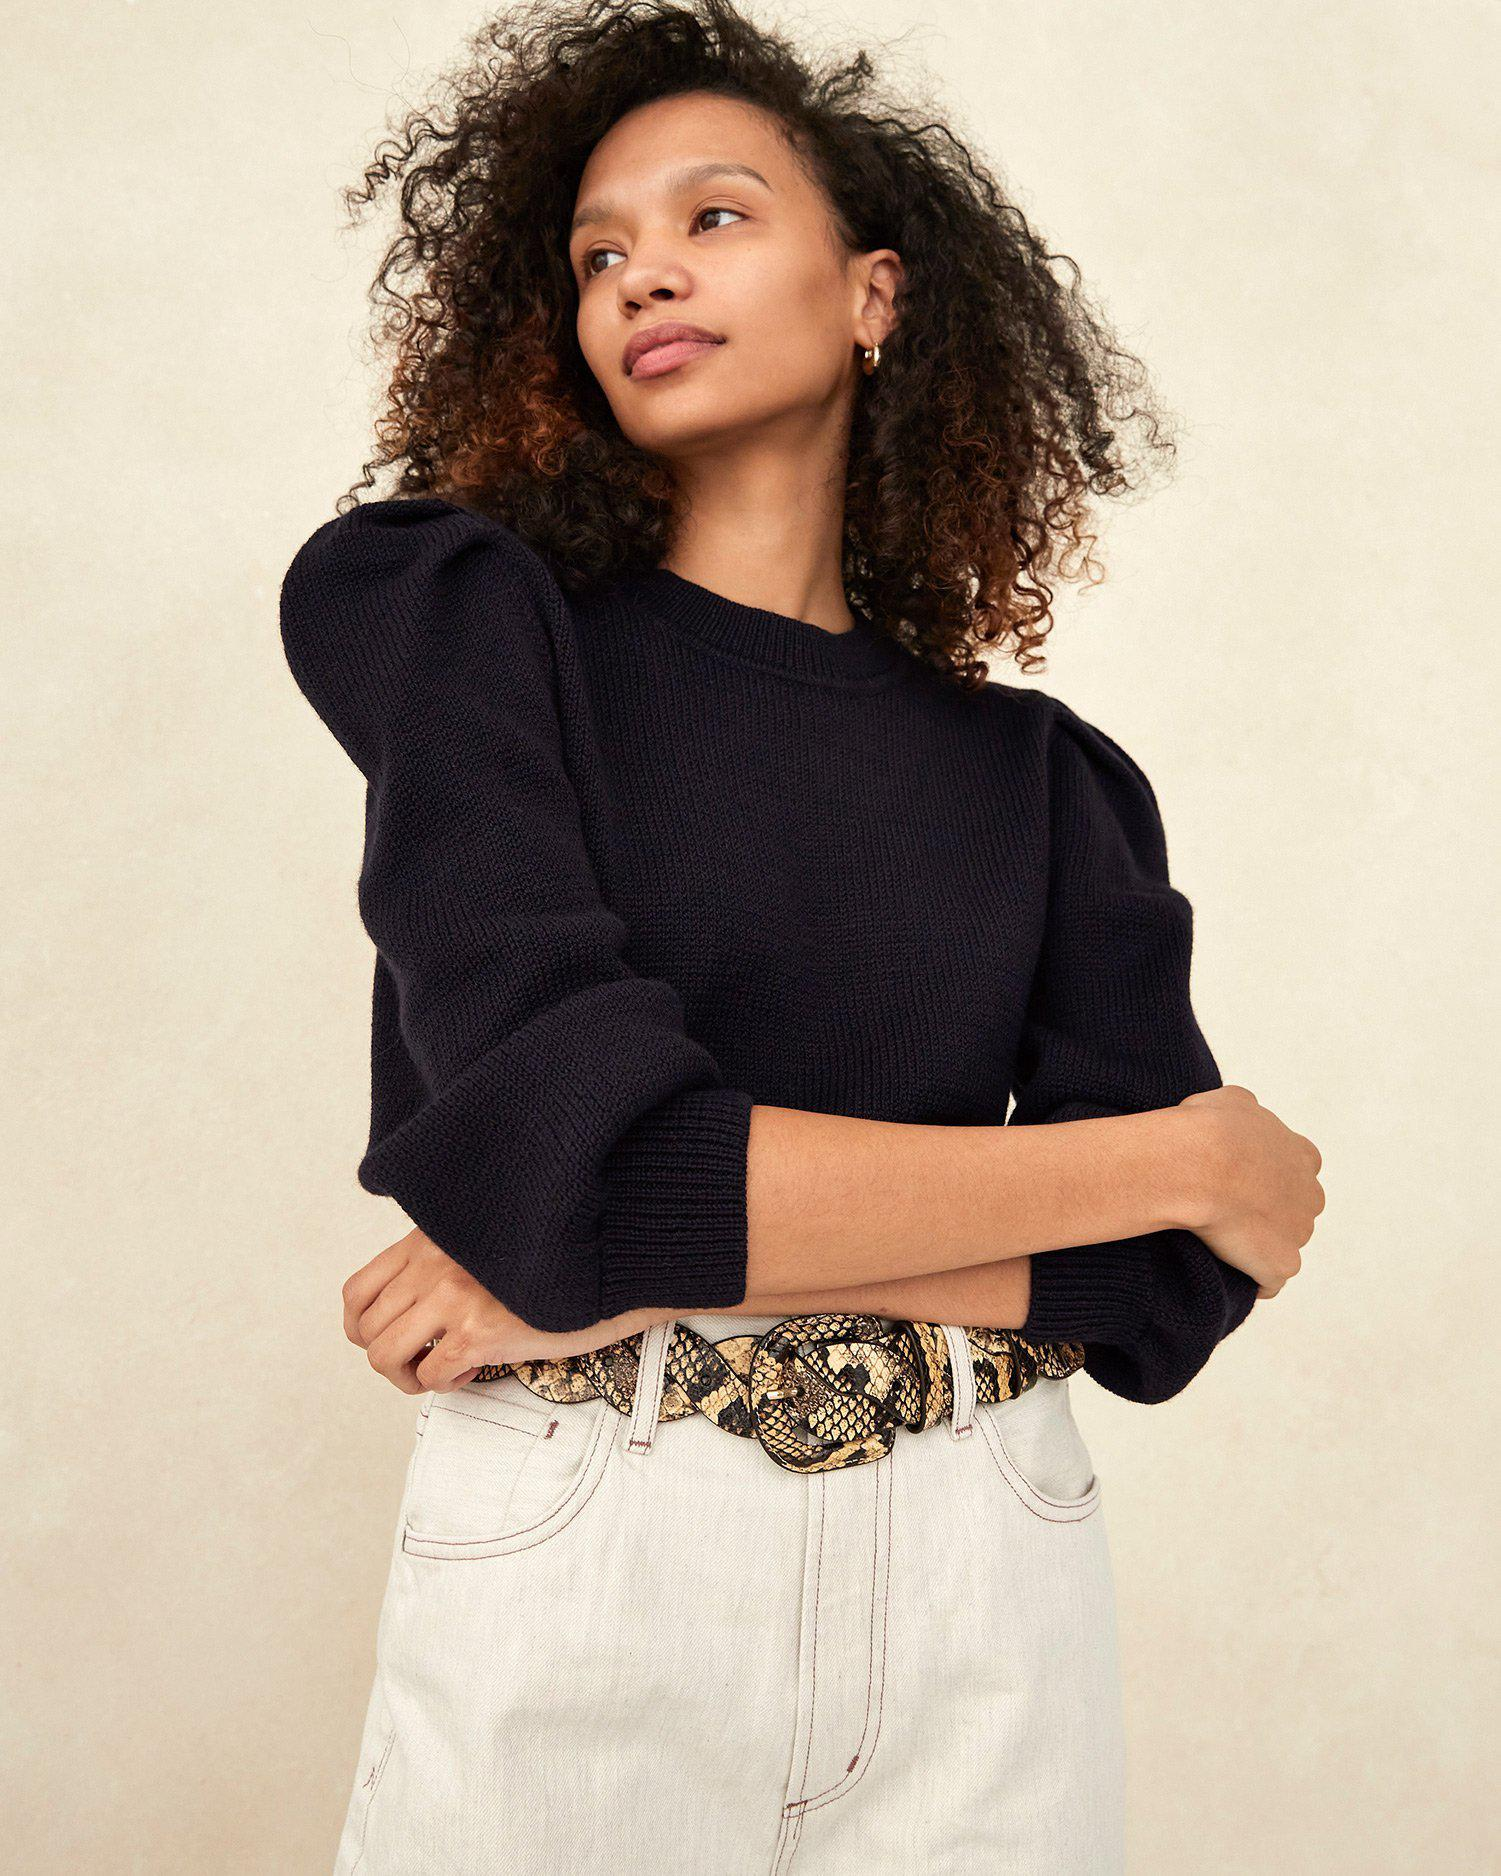 Knits for Good Navy Sweater